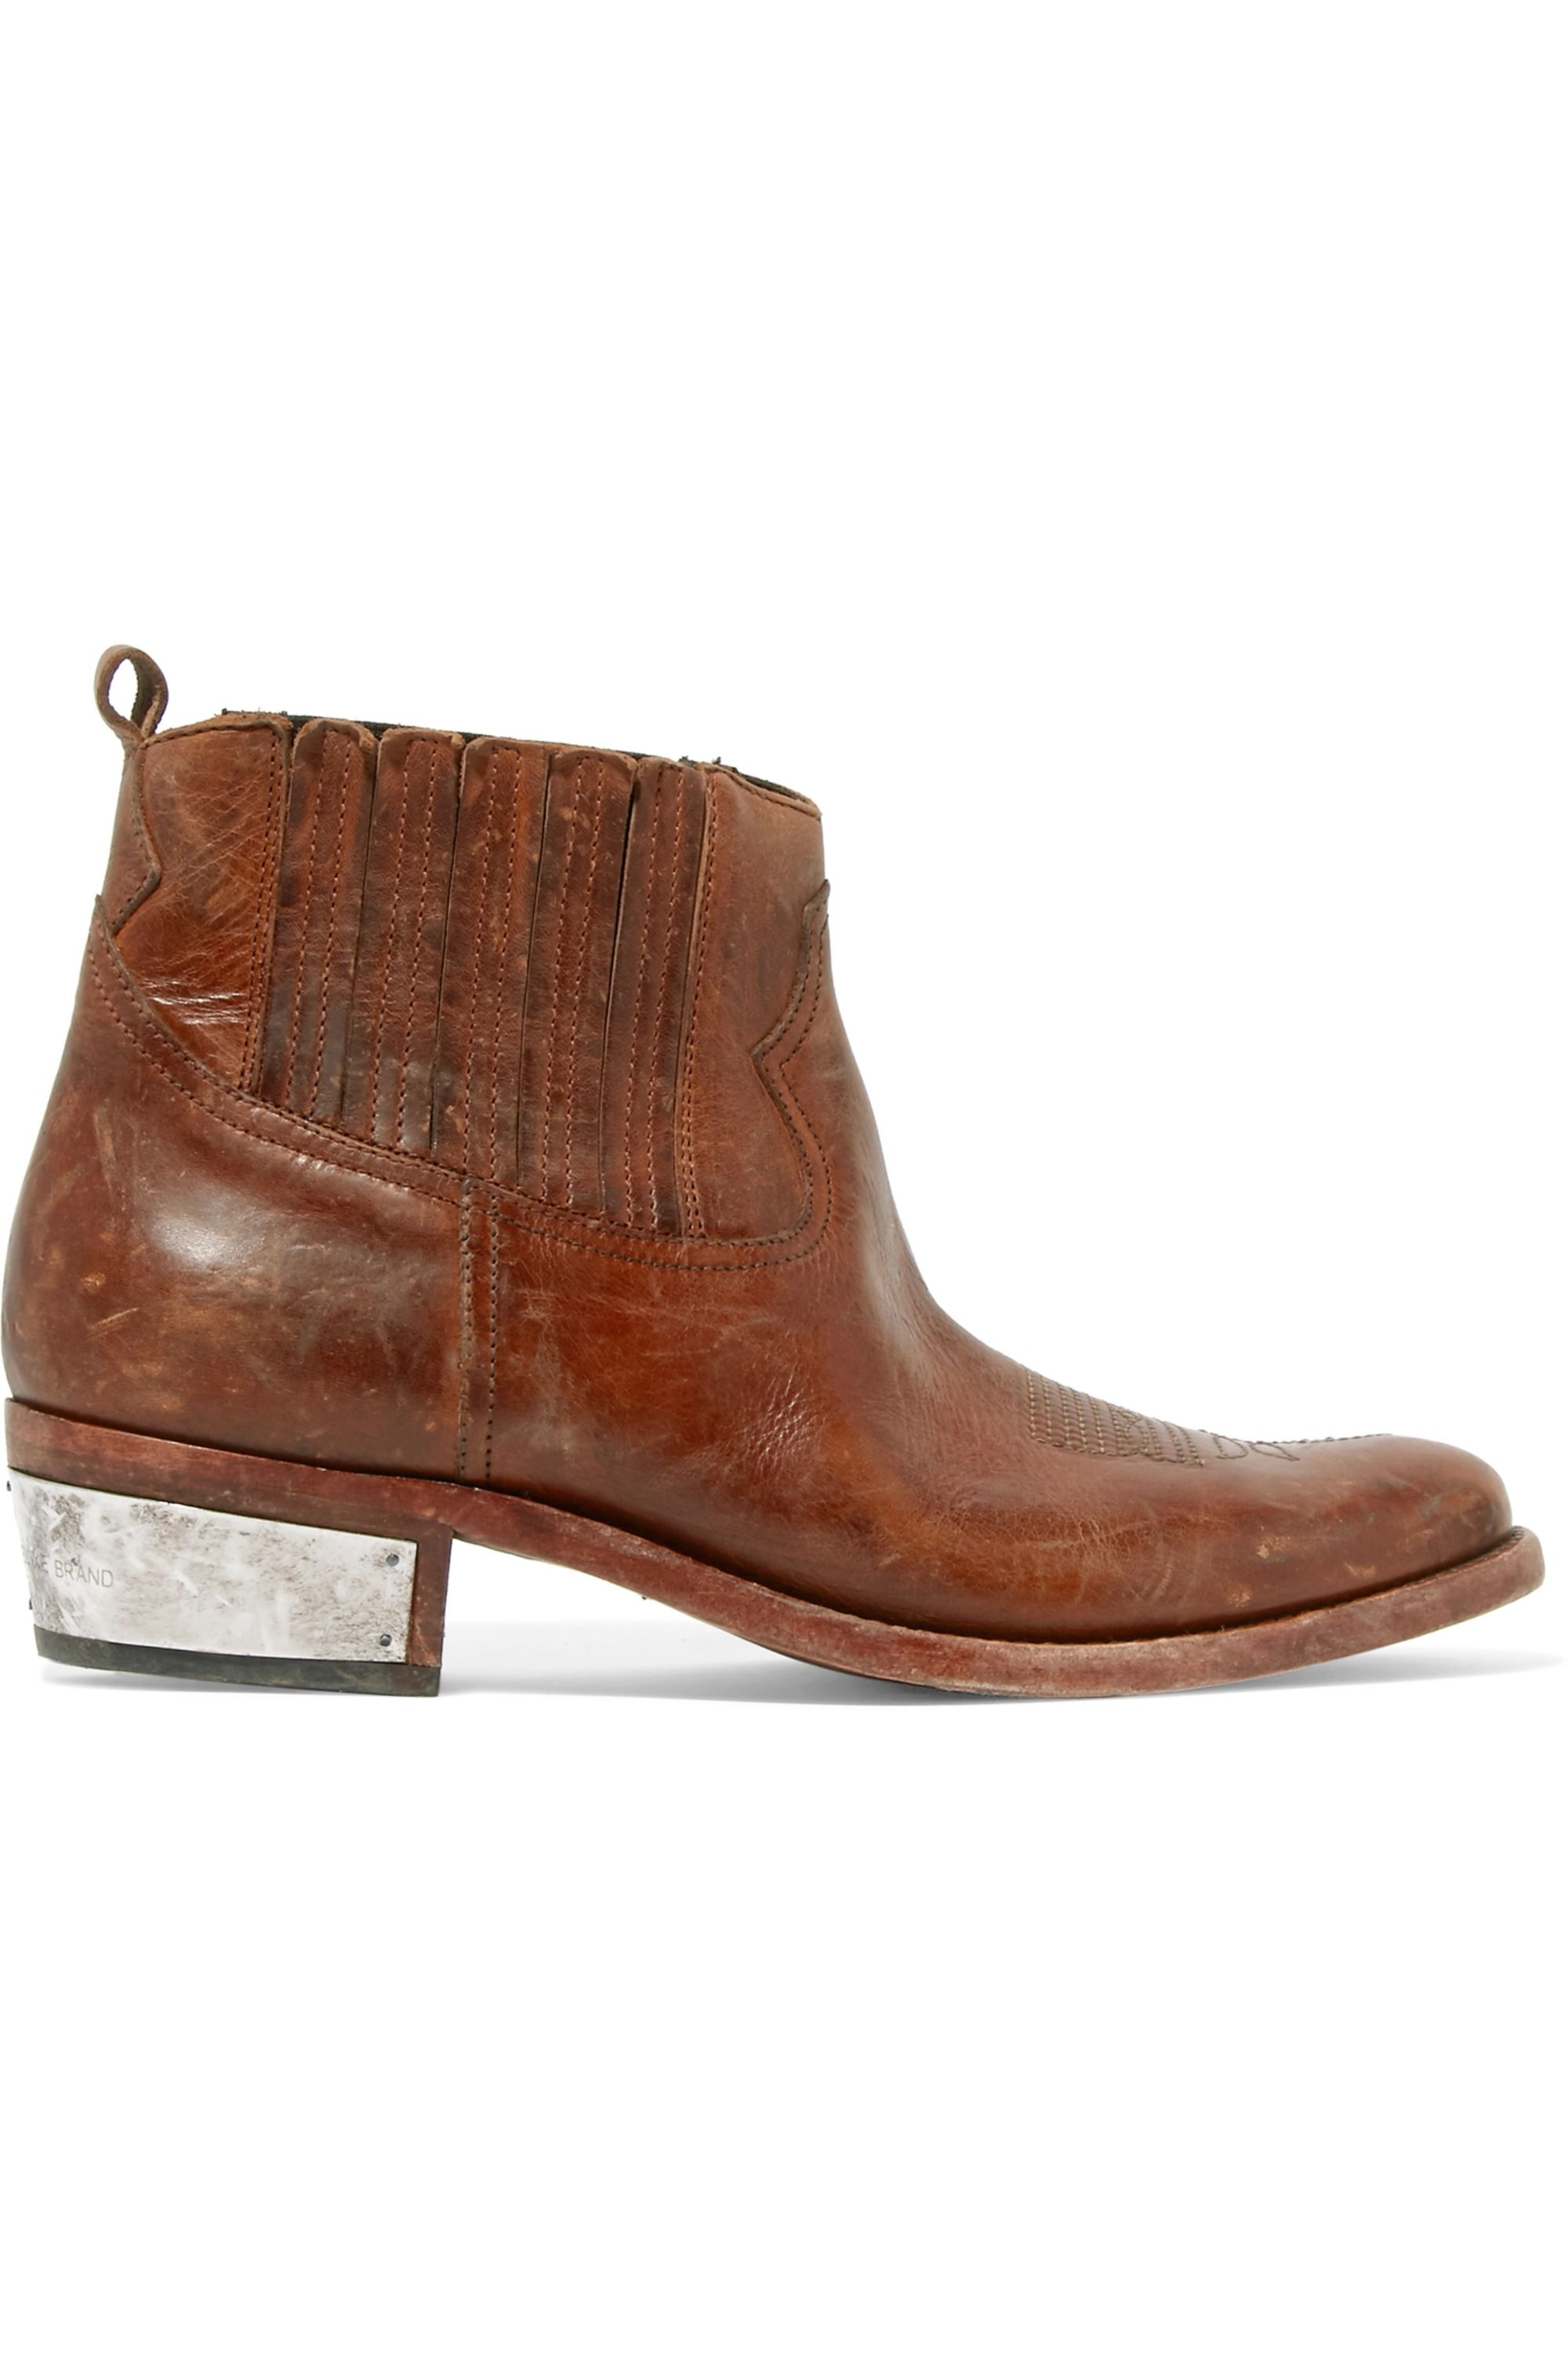 Brown Crosby distressed leather ankle